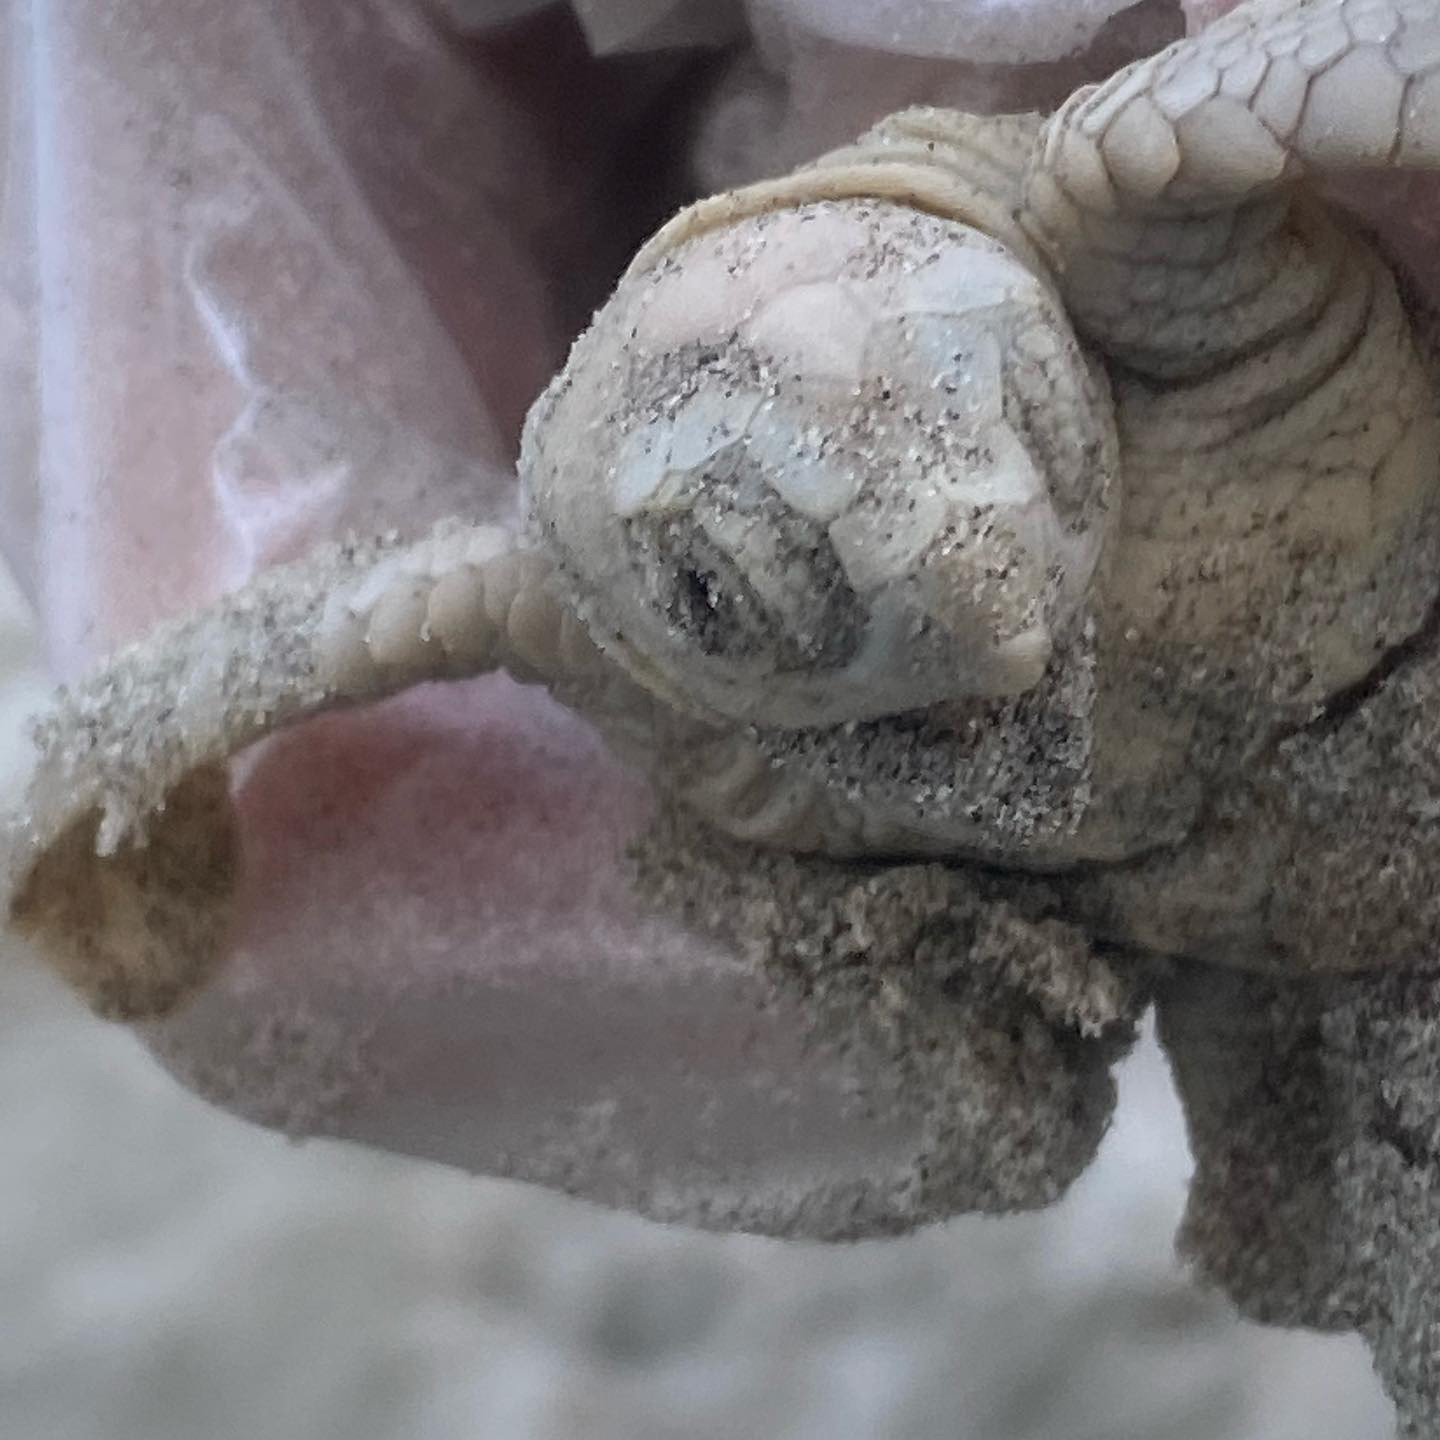 Rare White Seal Turtle Found Washed Ashore on South Carolina Beach: 'A First for Everyone'